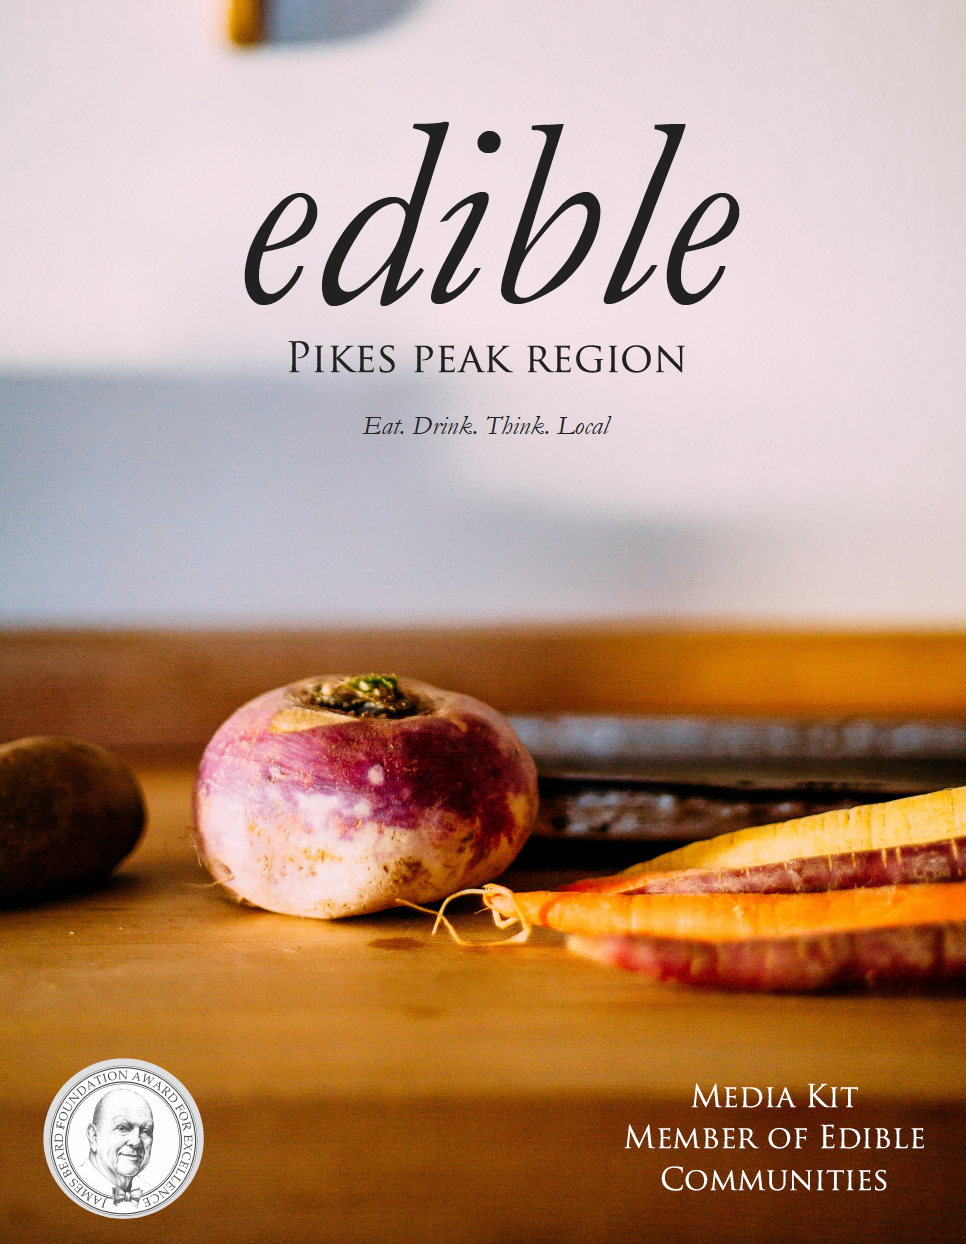 Download 2018 Media Kit   advertise@ediblepikespeak.com